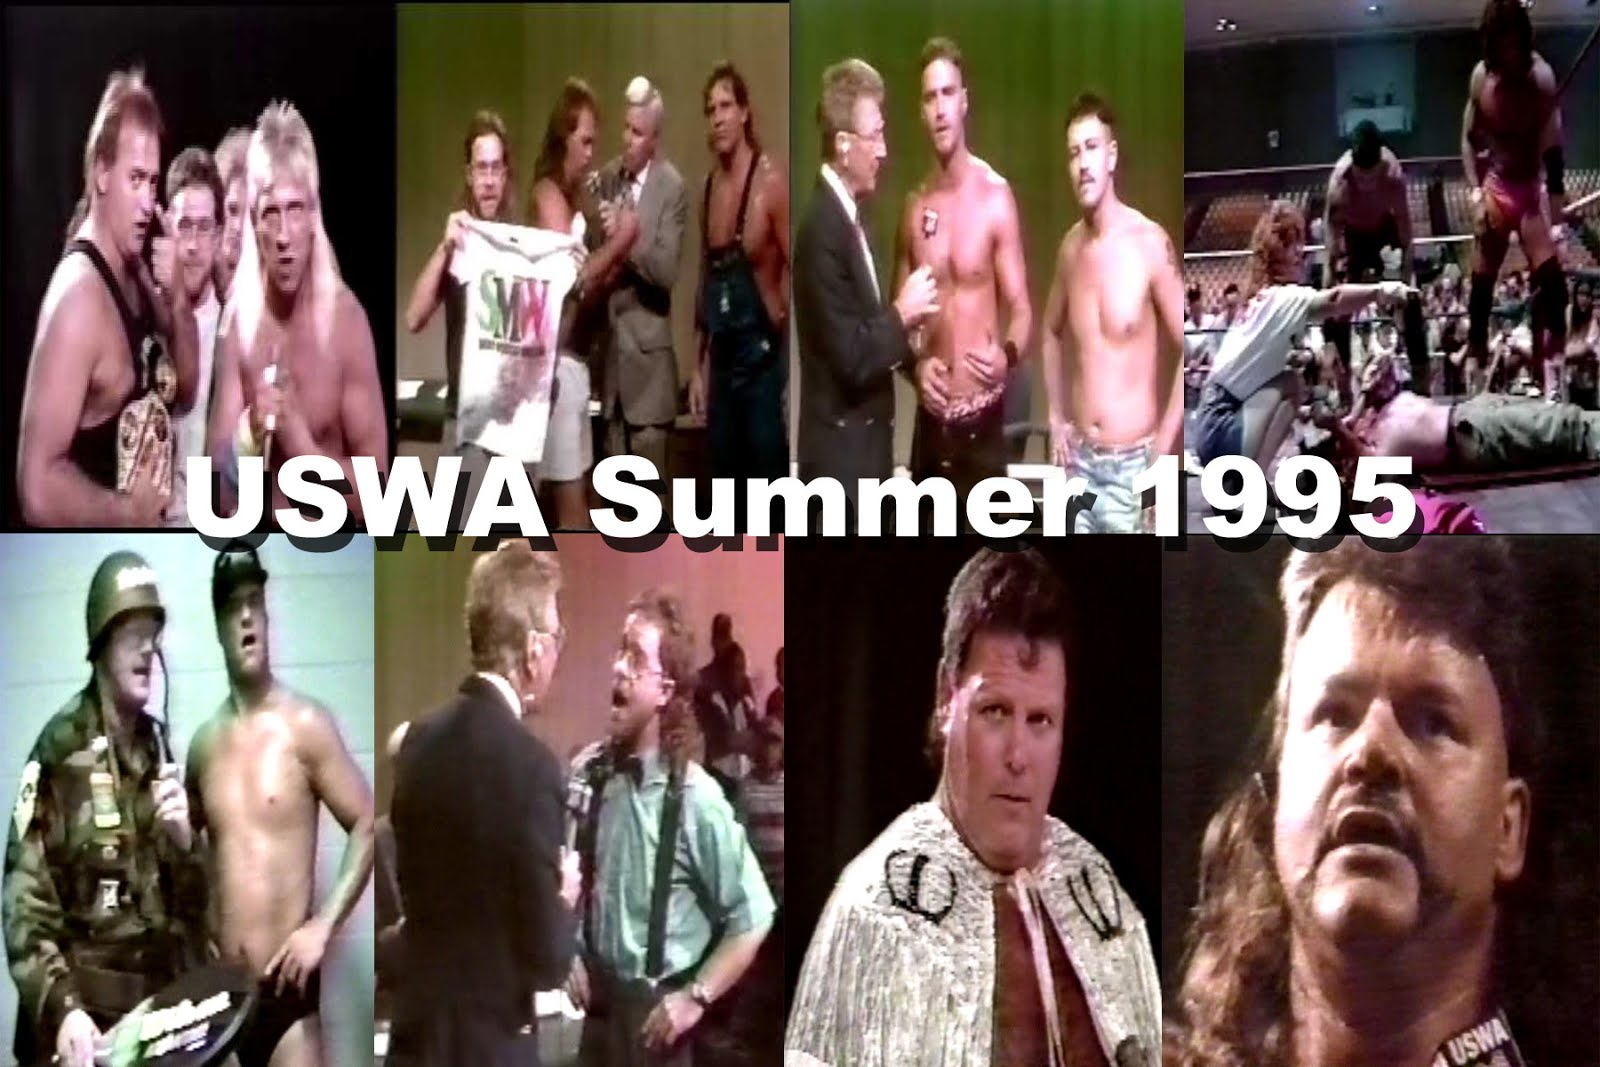 Summer 1995 USWA vs. SMW